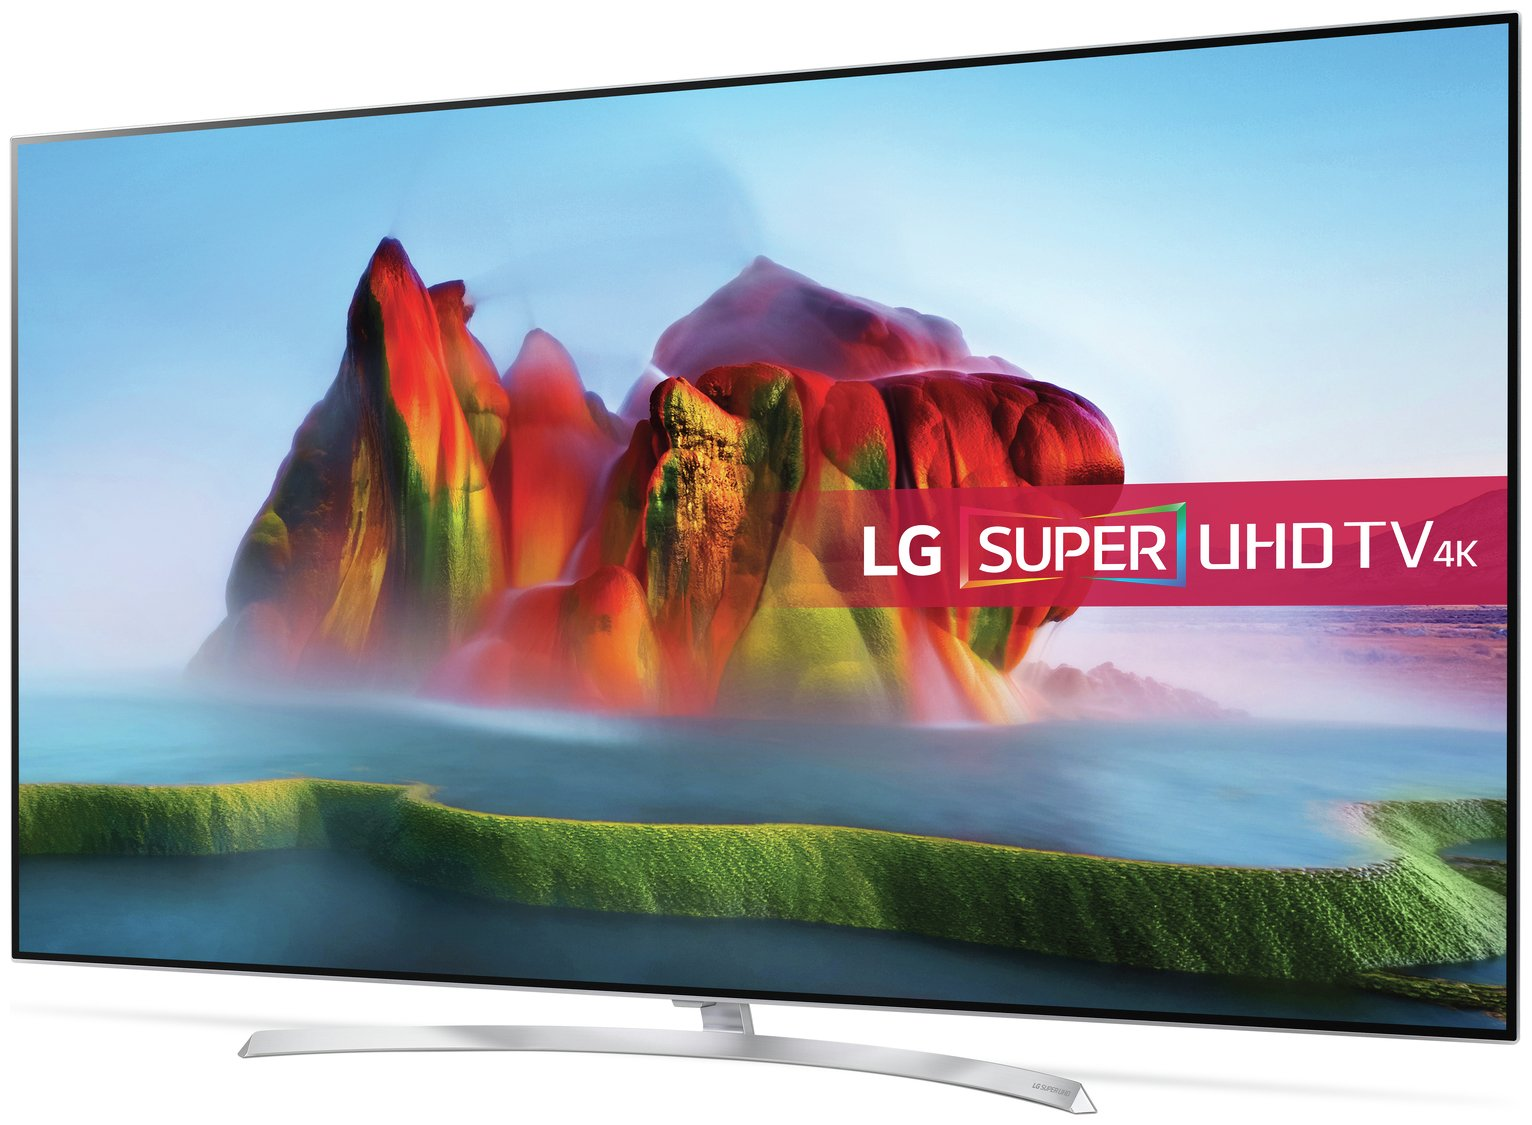 LG LG 65SJ950V 65 Inch Smart 4K Ultra HD TV with HDR